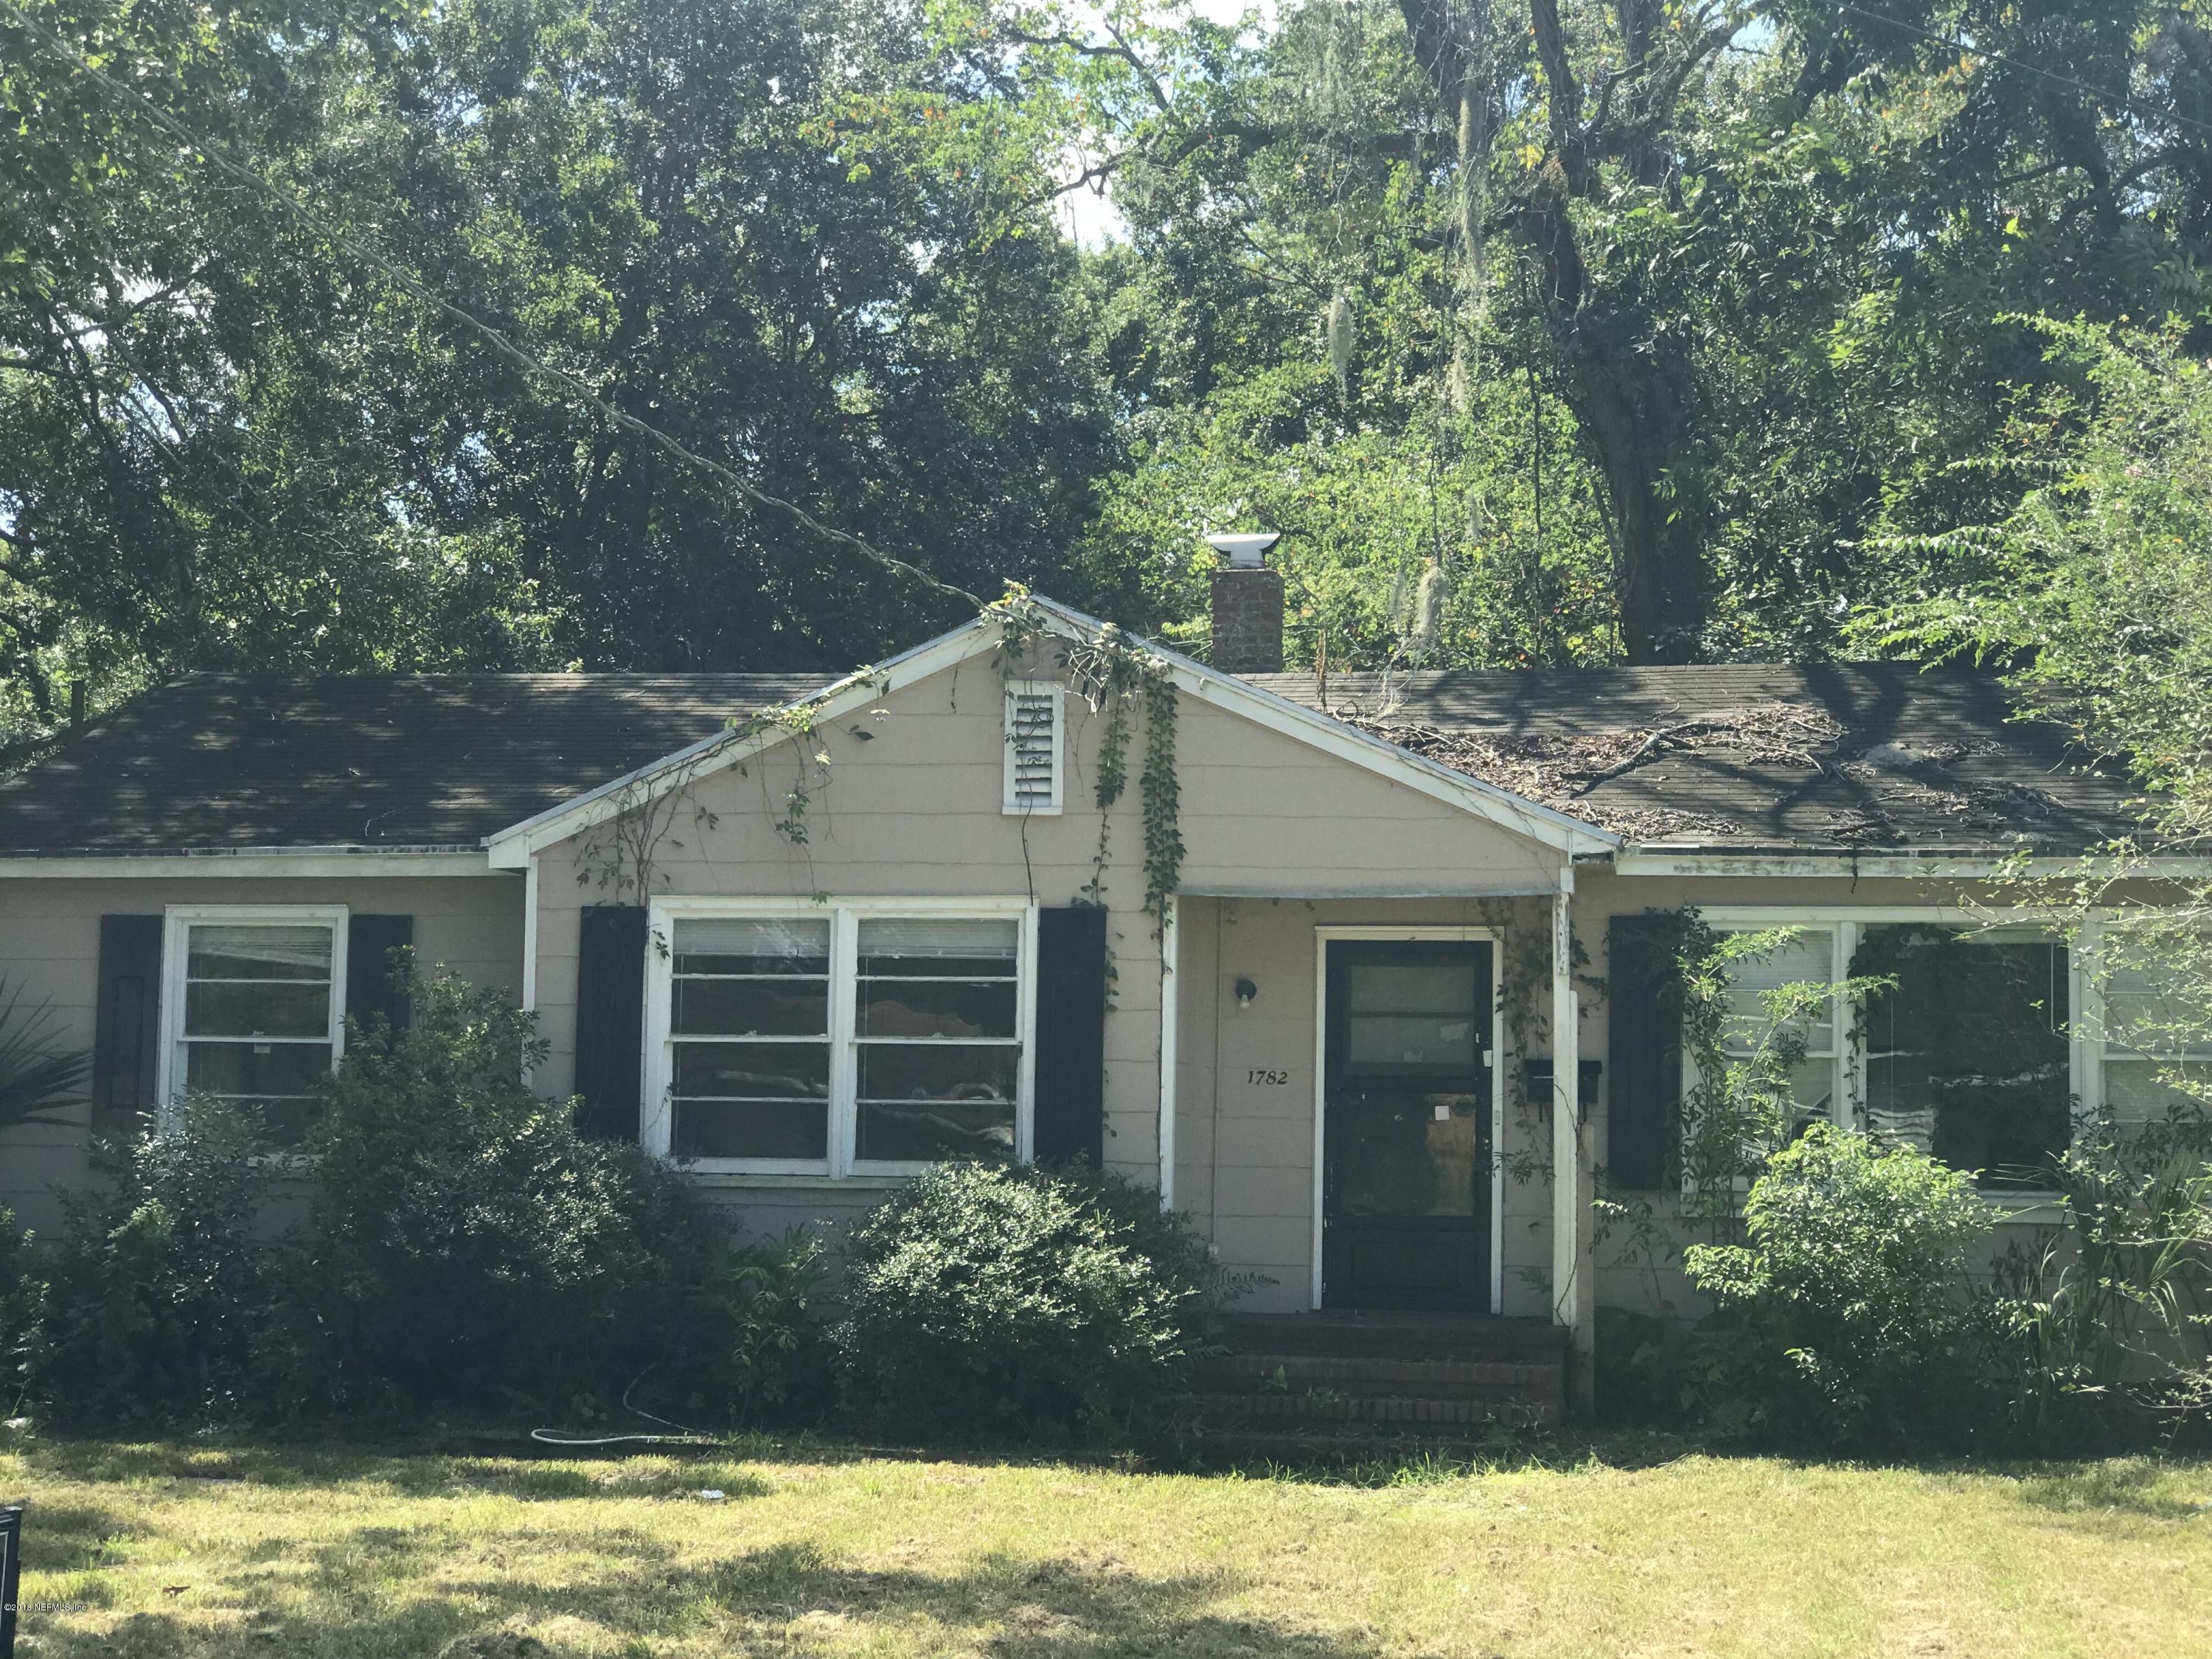 Photo of 1782 LILLY, JACKSONVILLE, FL 32207